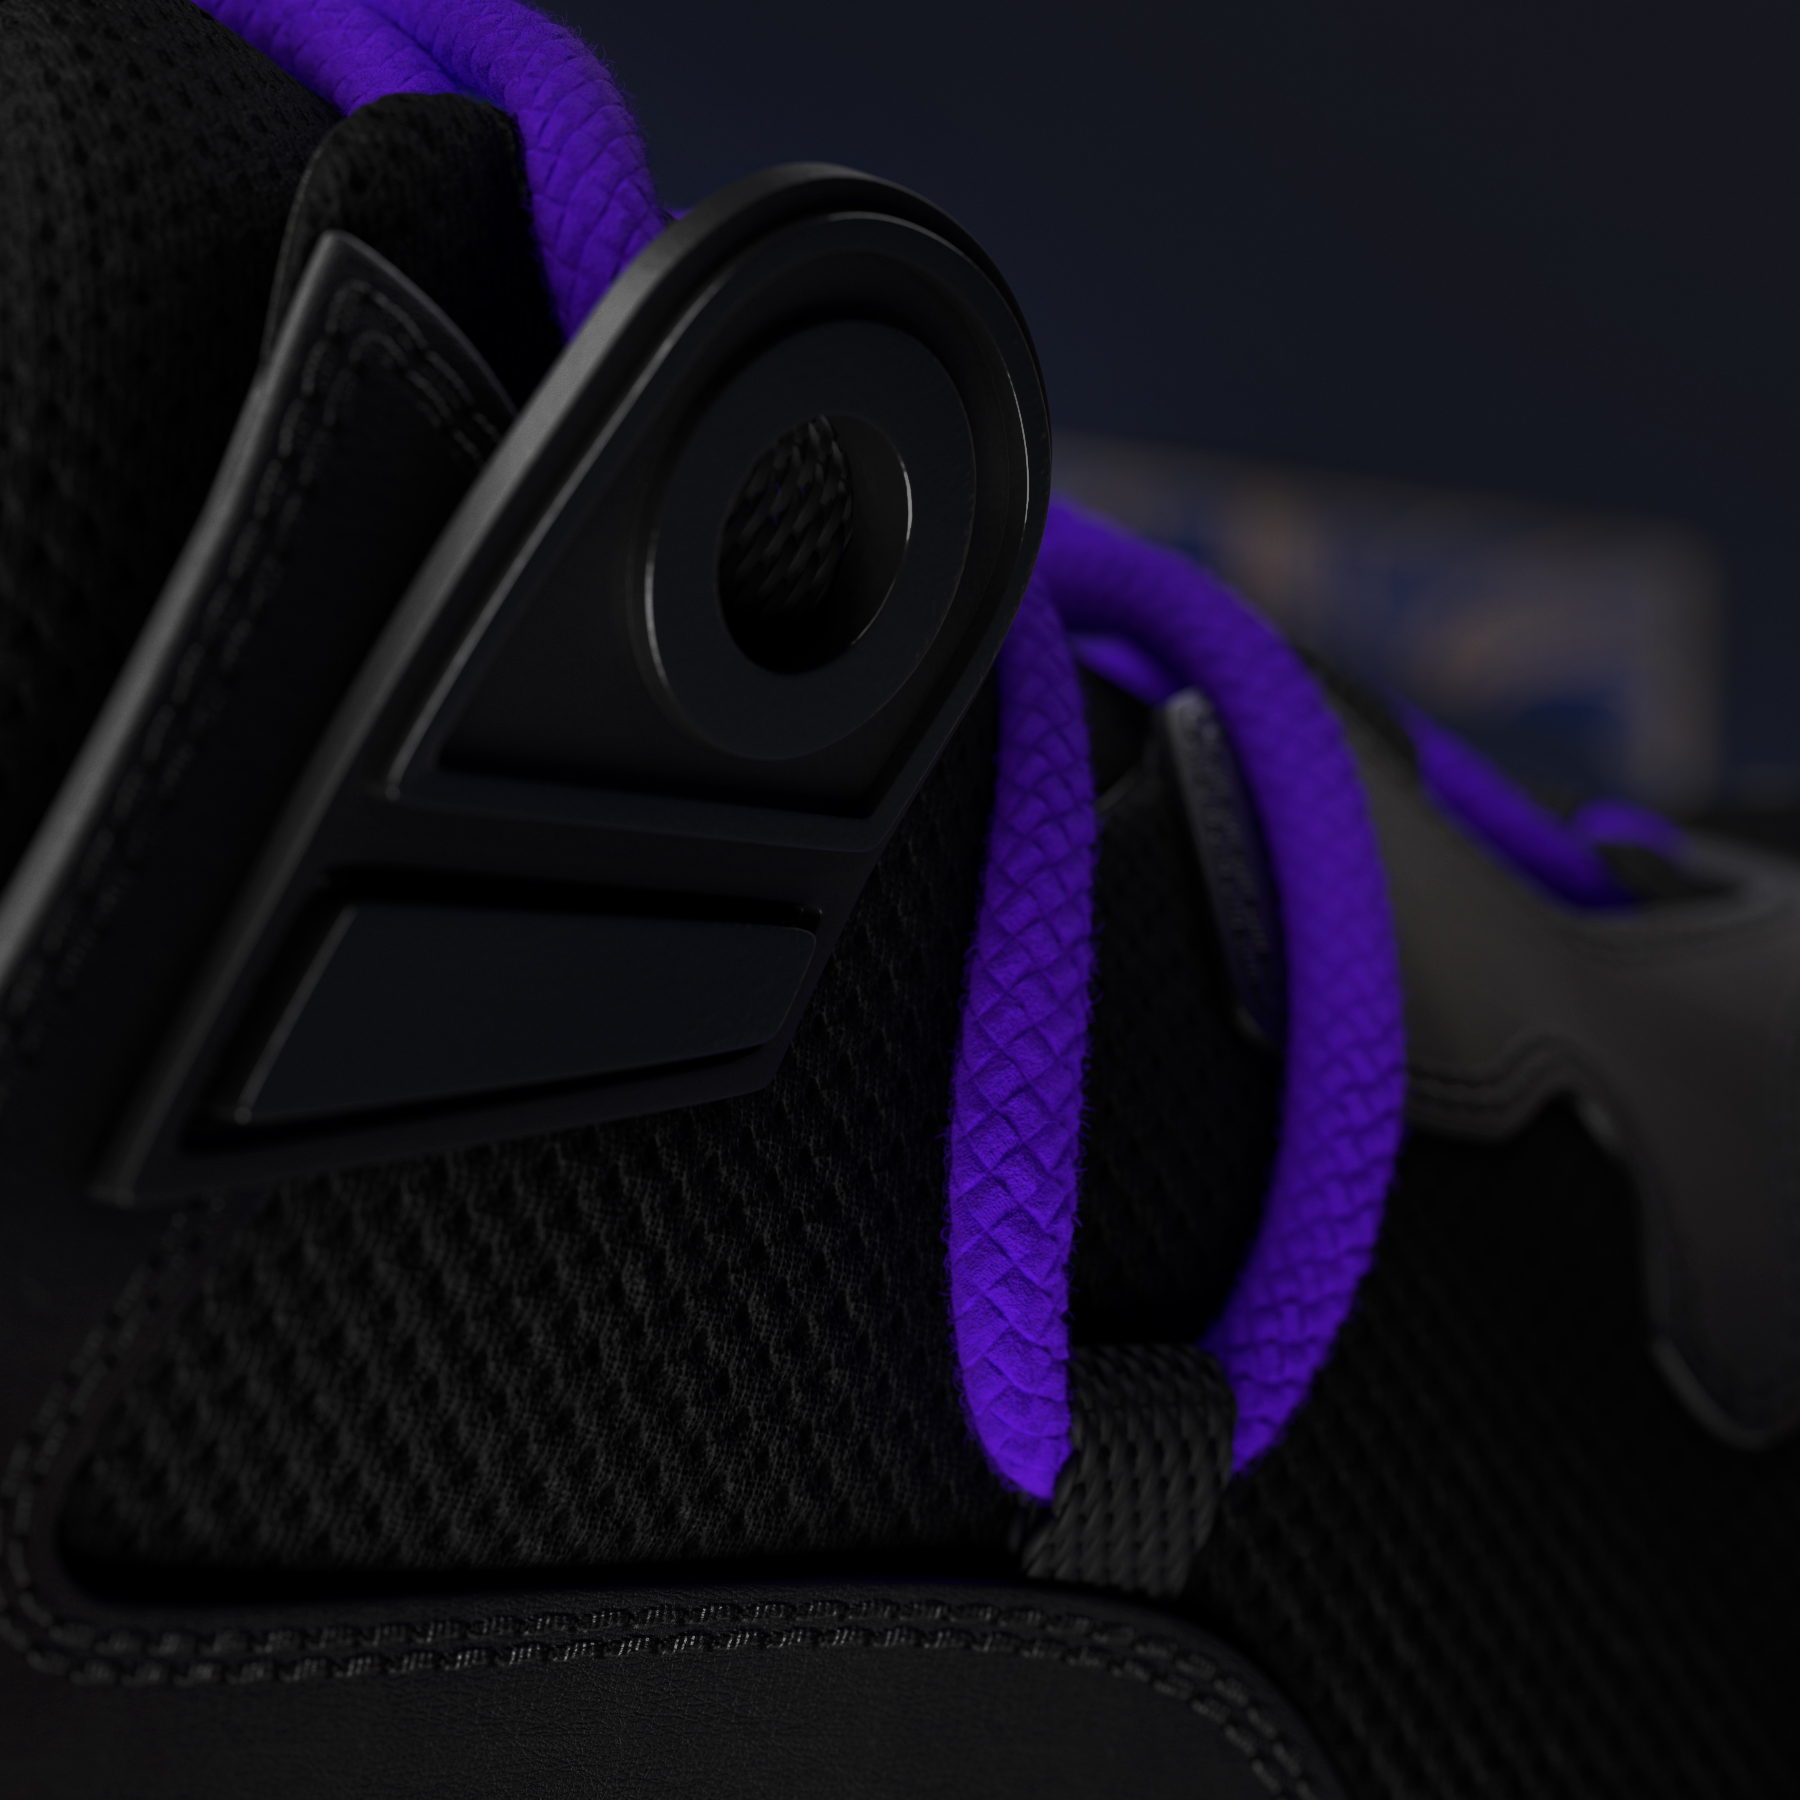 Sneaker's laces detail, close up side view.